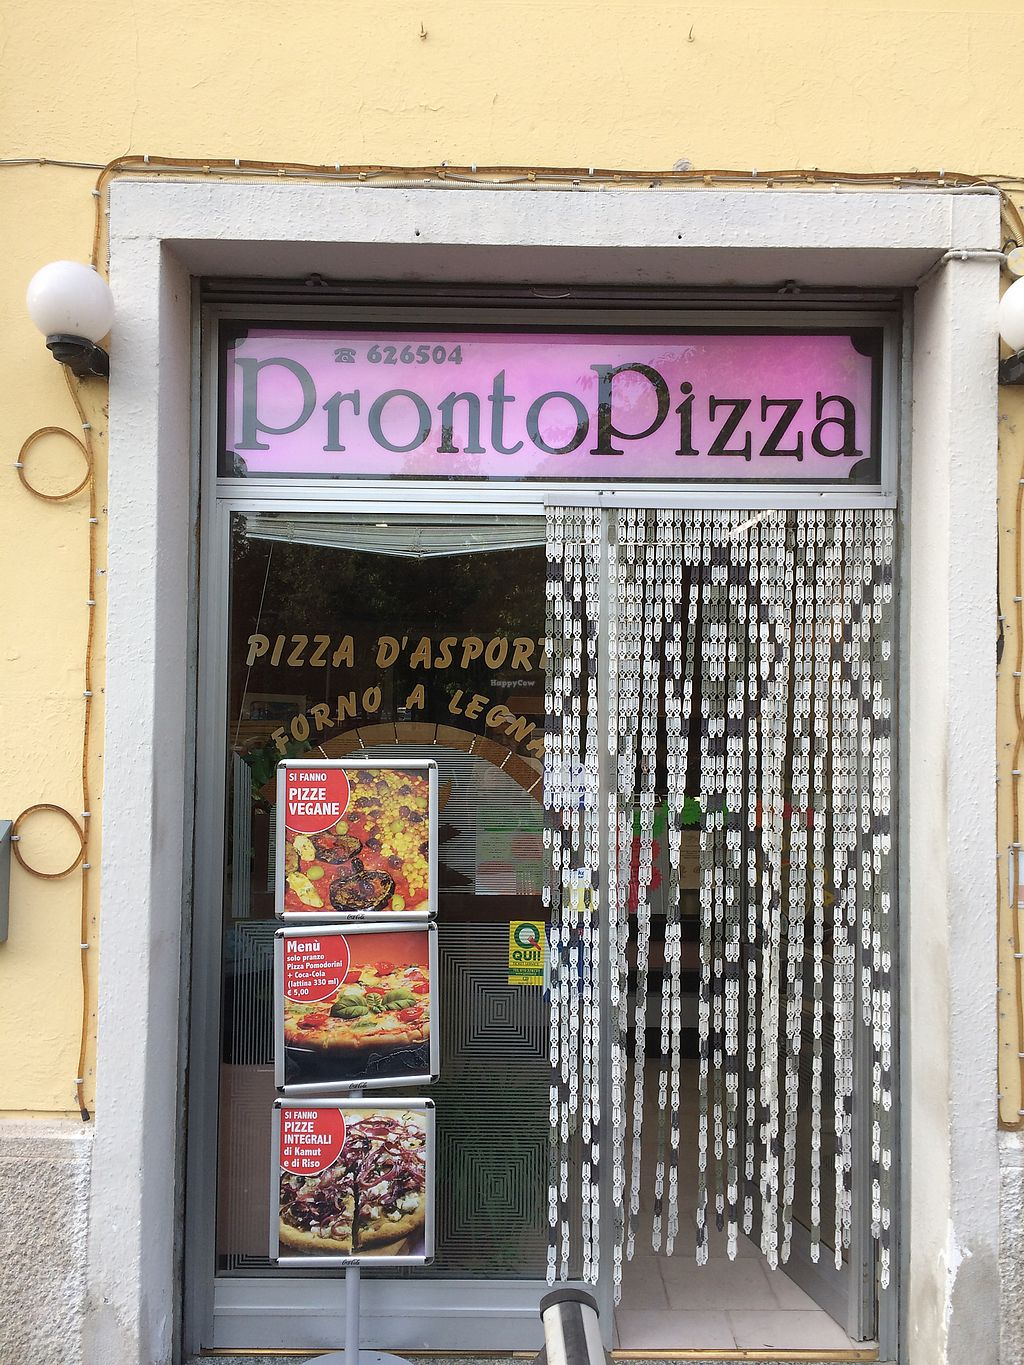 """Photo of Pronto Pizza  by <a href=""""/members/profile/veg%C3%A9line"""">vegéline</a> <br/>Pizzeria <br/> August 1, 2017  - <a href='/contact/abuse/image/67579/287824'>Report</a>"""